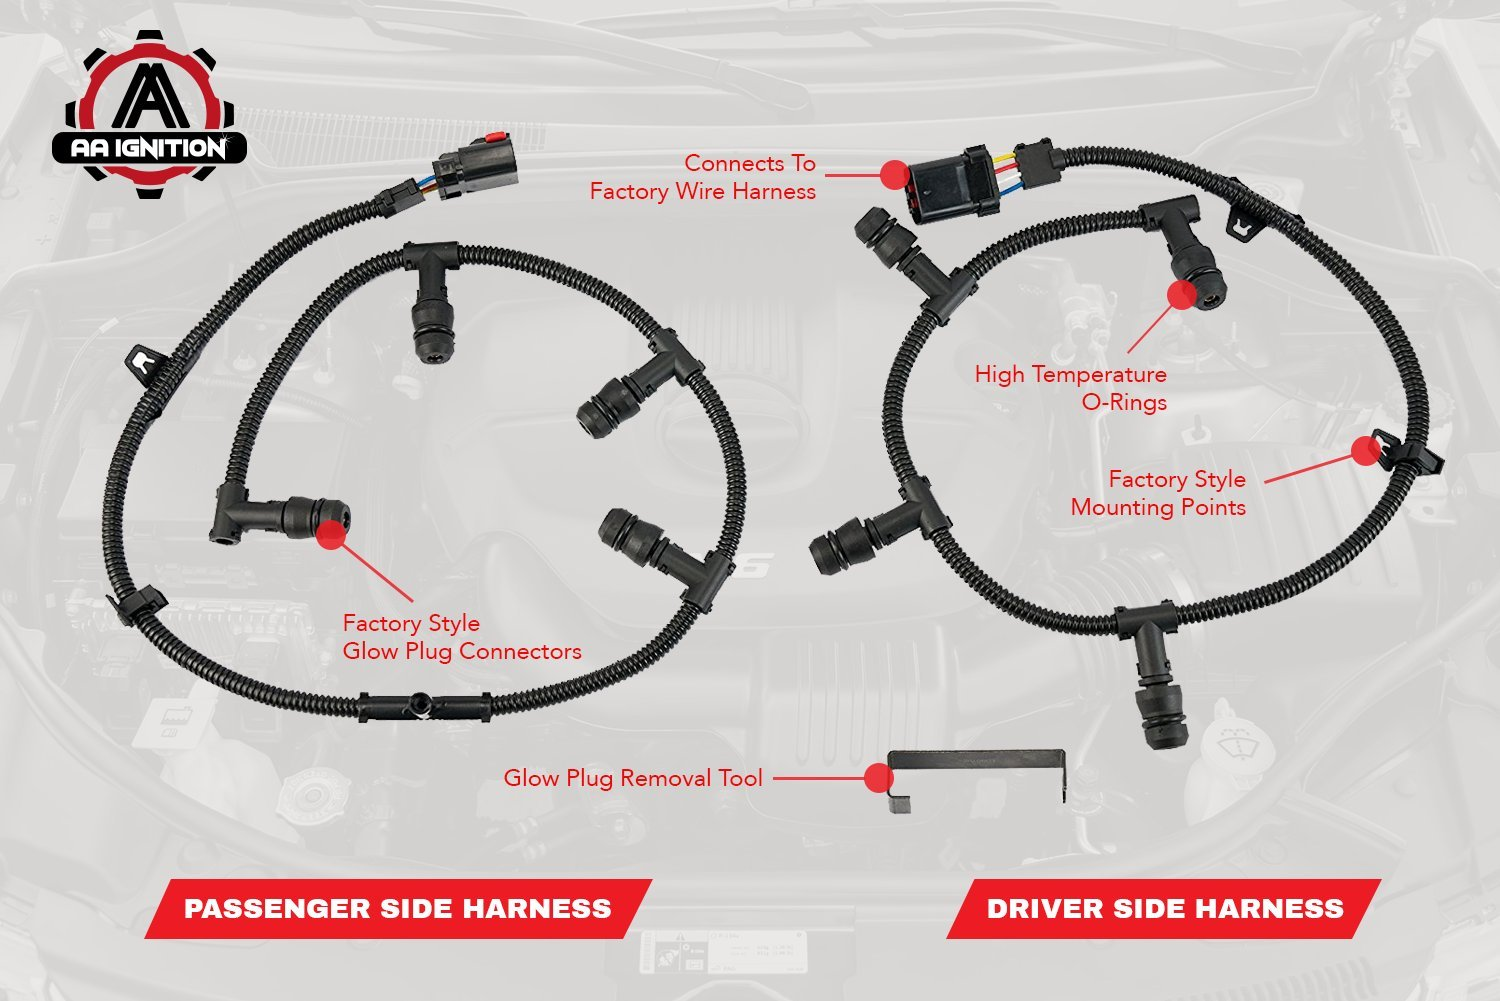 Ford Powerstroke 60 Glow Plug Harness Kit Compatible 2006 F 250 Wiring Diagram Customer Access Replacement Includes Right Left Removal Tool Fits F250 Super Duty F350